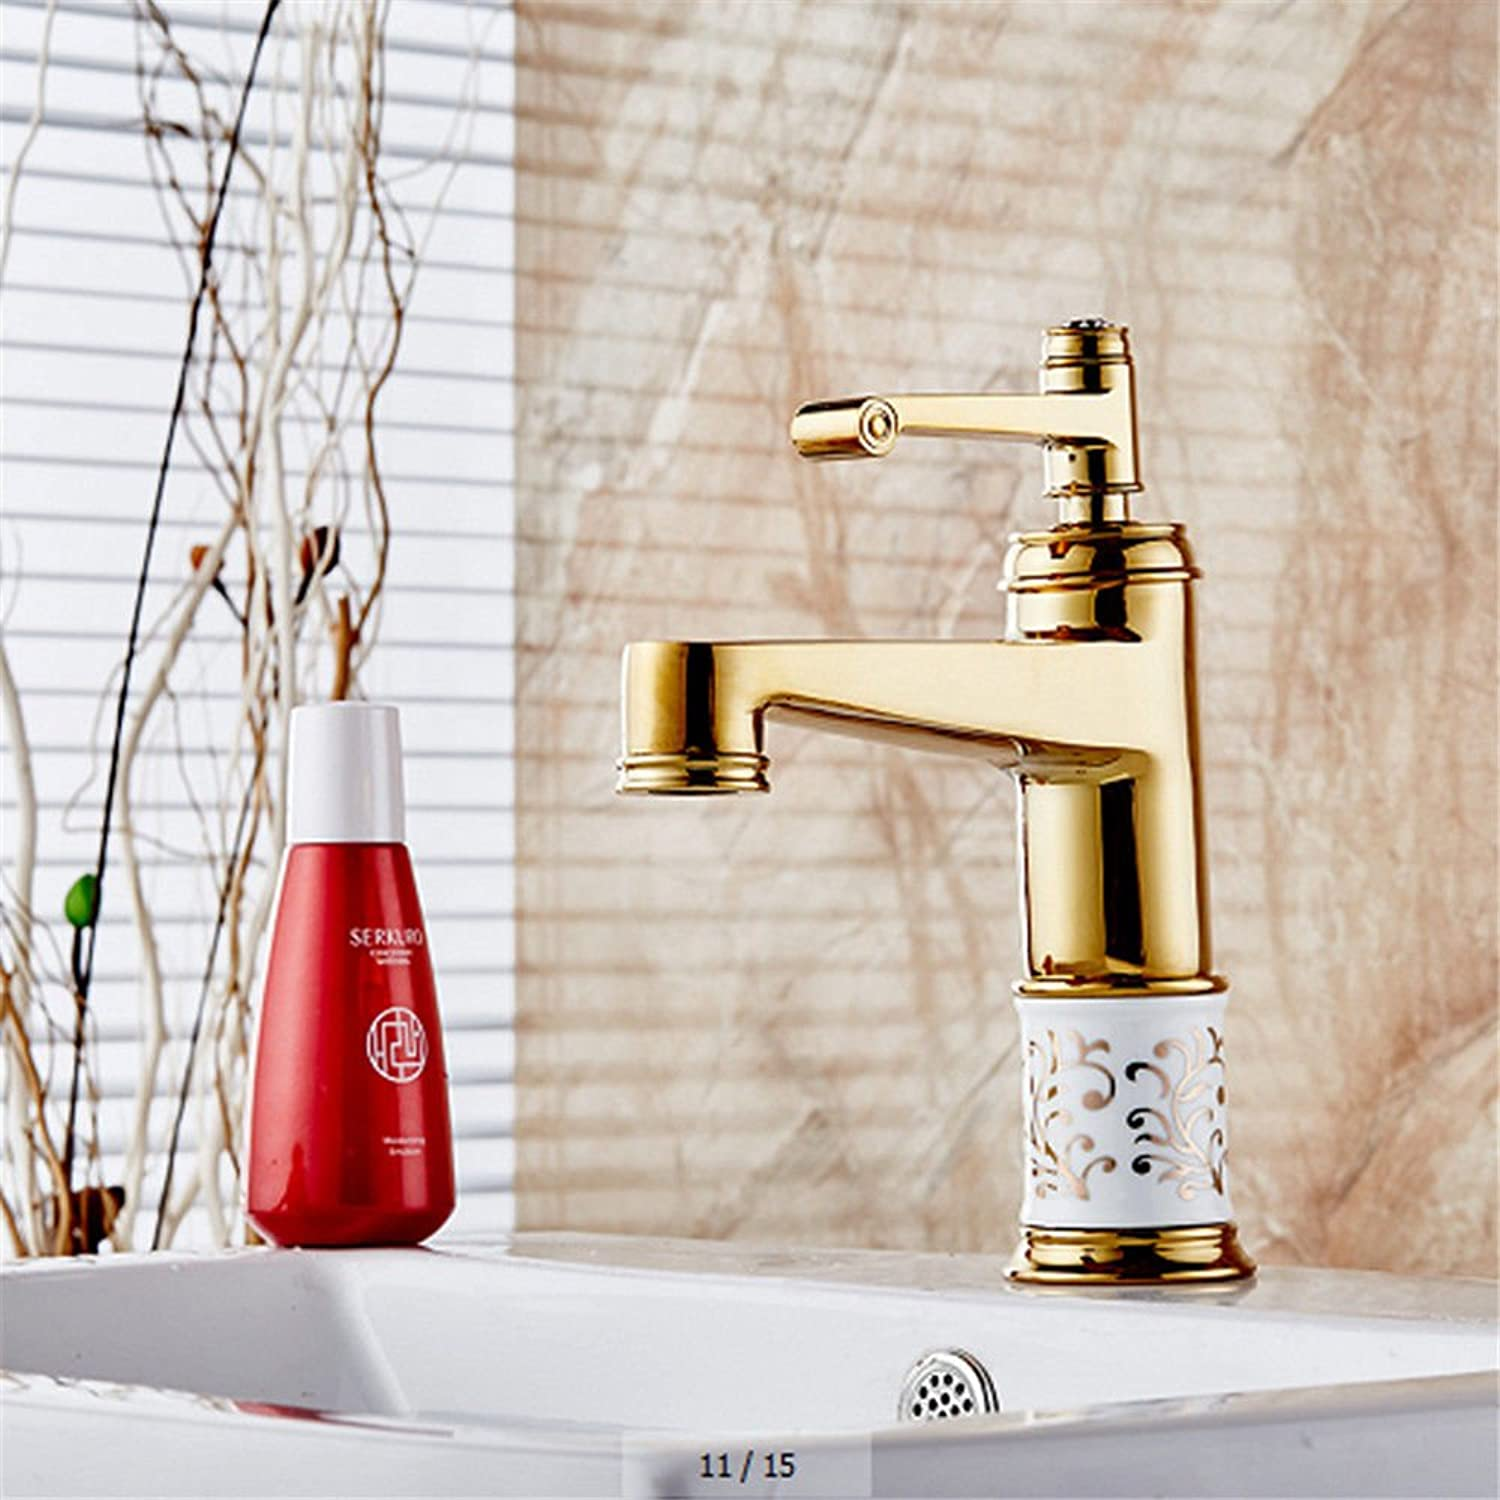 Lalaky Taps Faucet Kitchen Mixer Sink Waterfall Bathroom Mixer Basin Mixer Tap for Kitchen Bathroom and Washroom Retro Copper Hot and Cold White Pattern Ceramic gold Hot and Cold Mixed